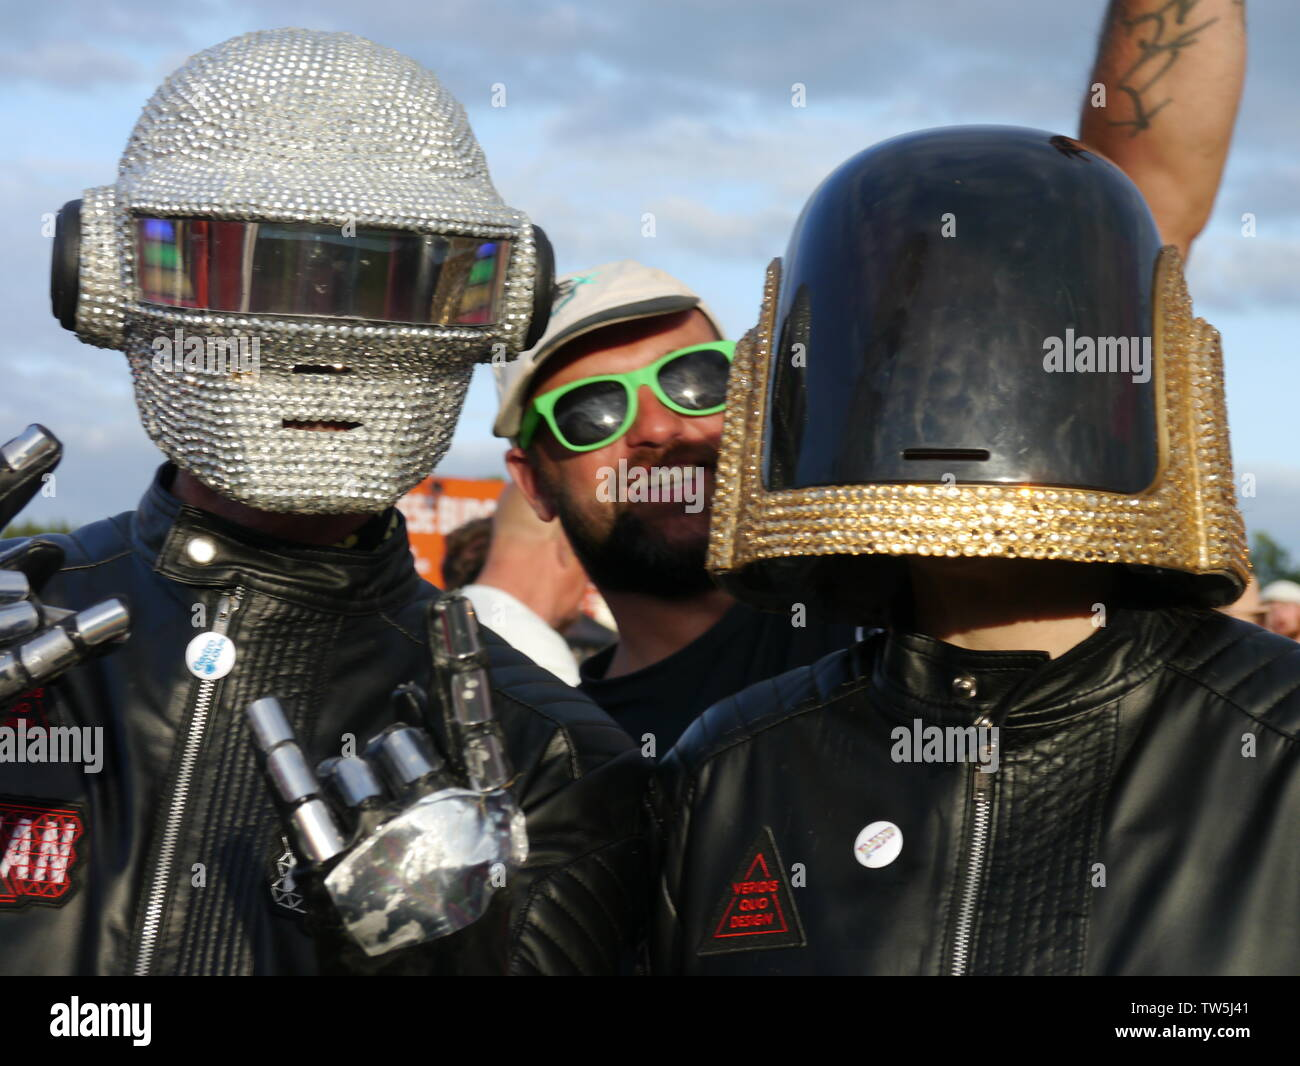 Newport, Isle of Wight. June 16 2019. Isle of Wight Festival - Human Robots duo with biker helmets showing off their attire nouveau costumes. Stock Photo